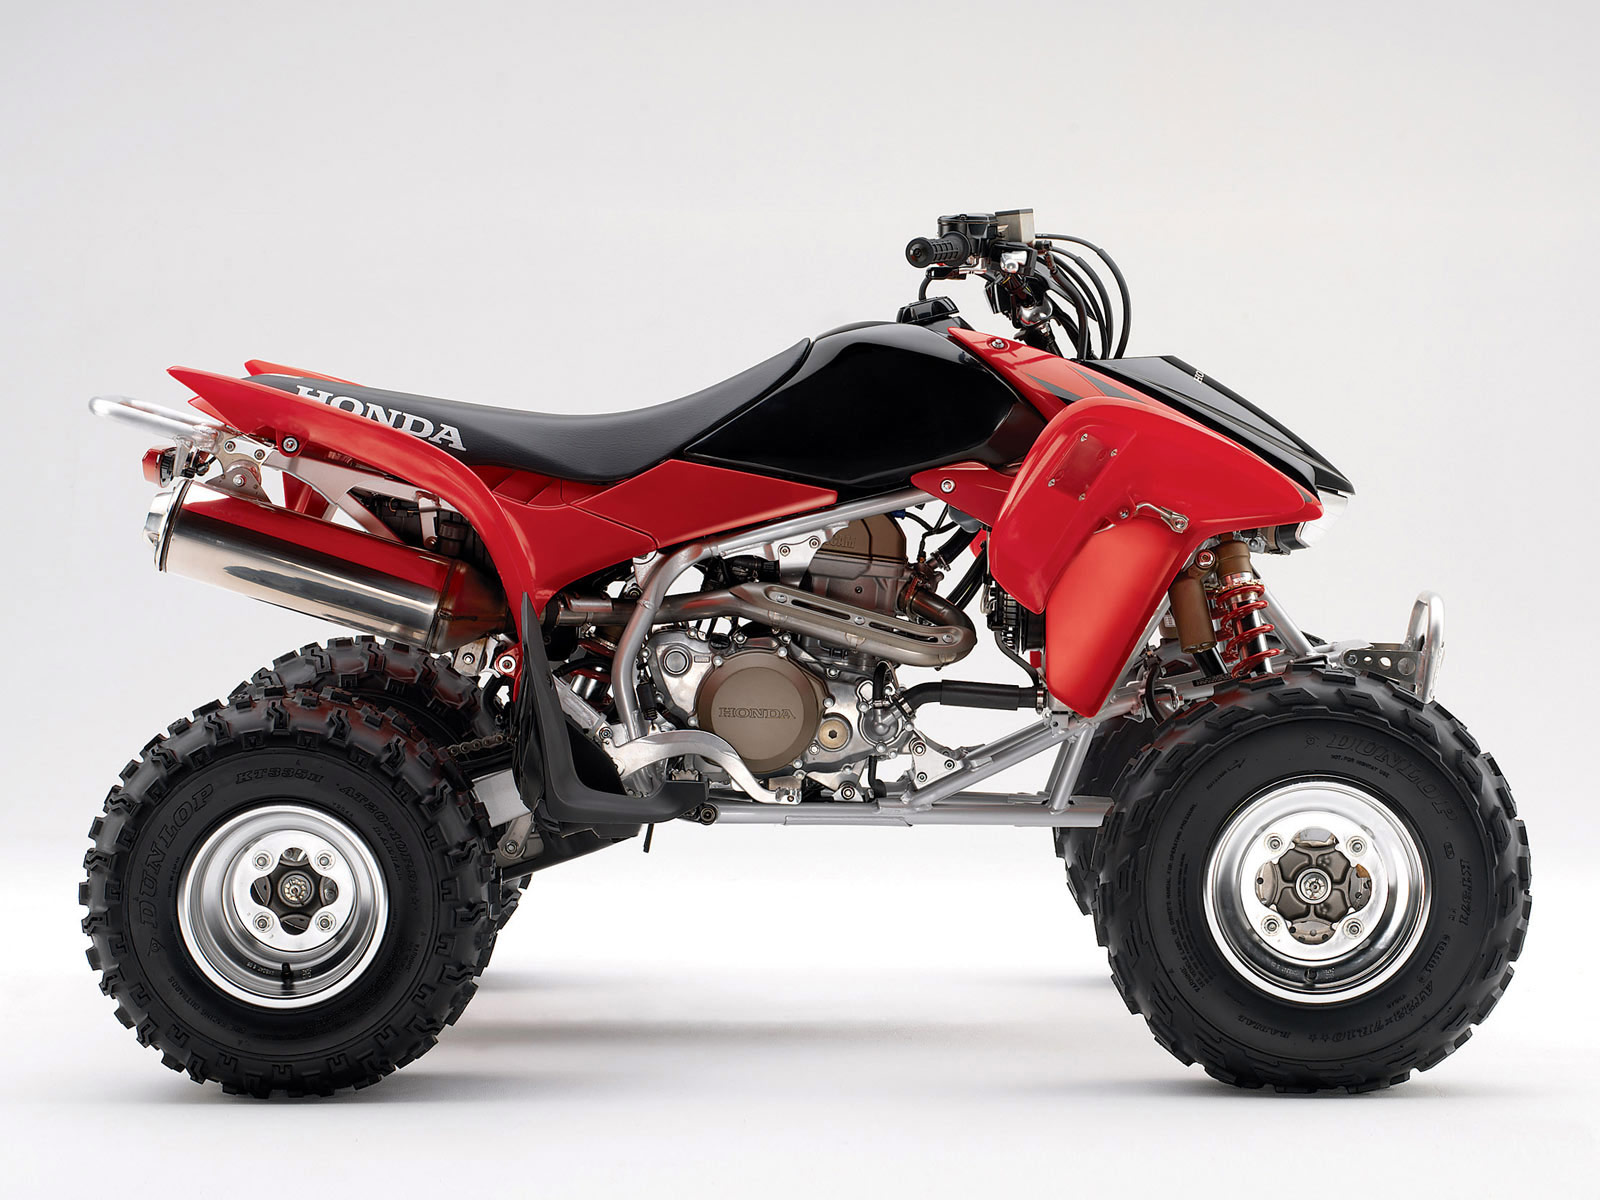 atv you from available have so now and same original back can for online are choice manufacturers perfect parts function replaced old once the get honda these easily whatyvonneloves broken